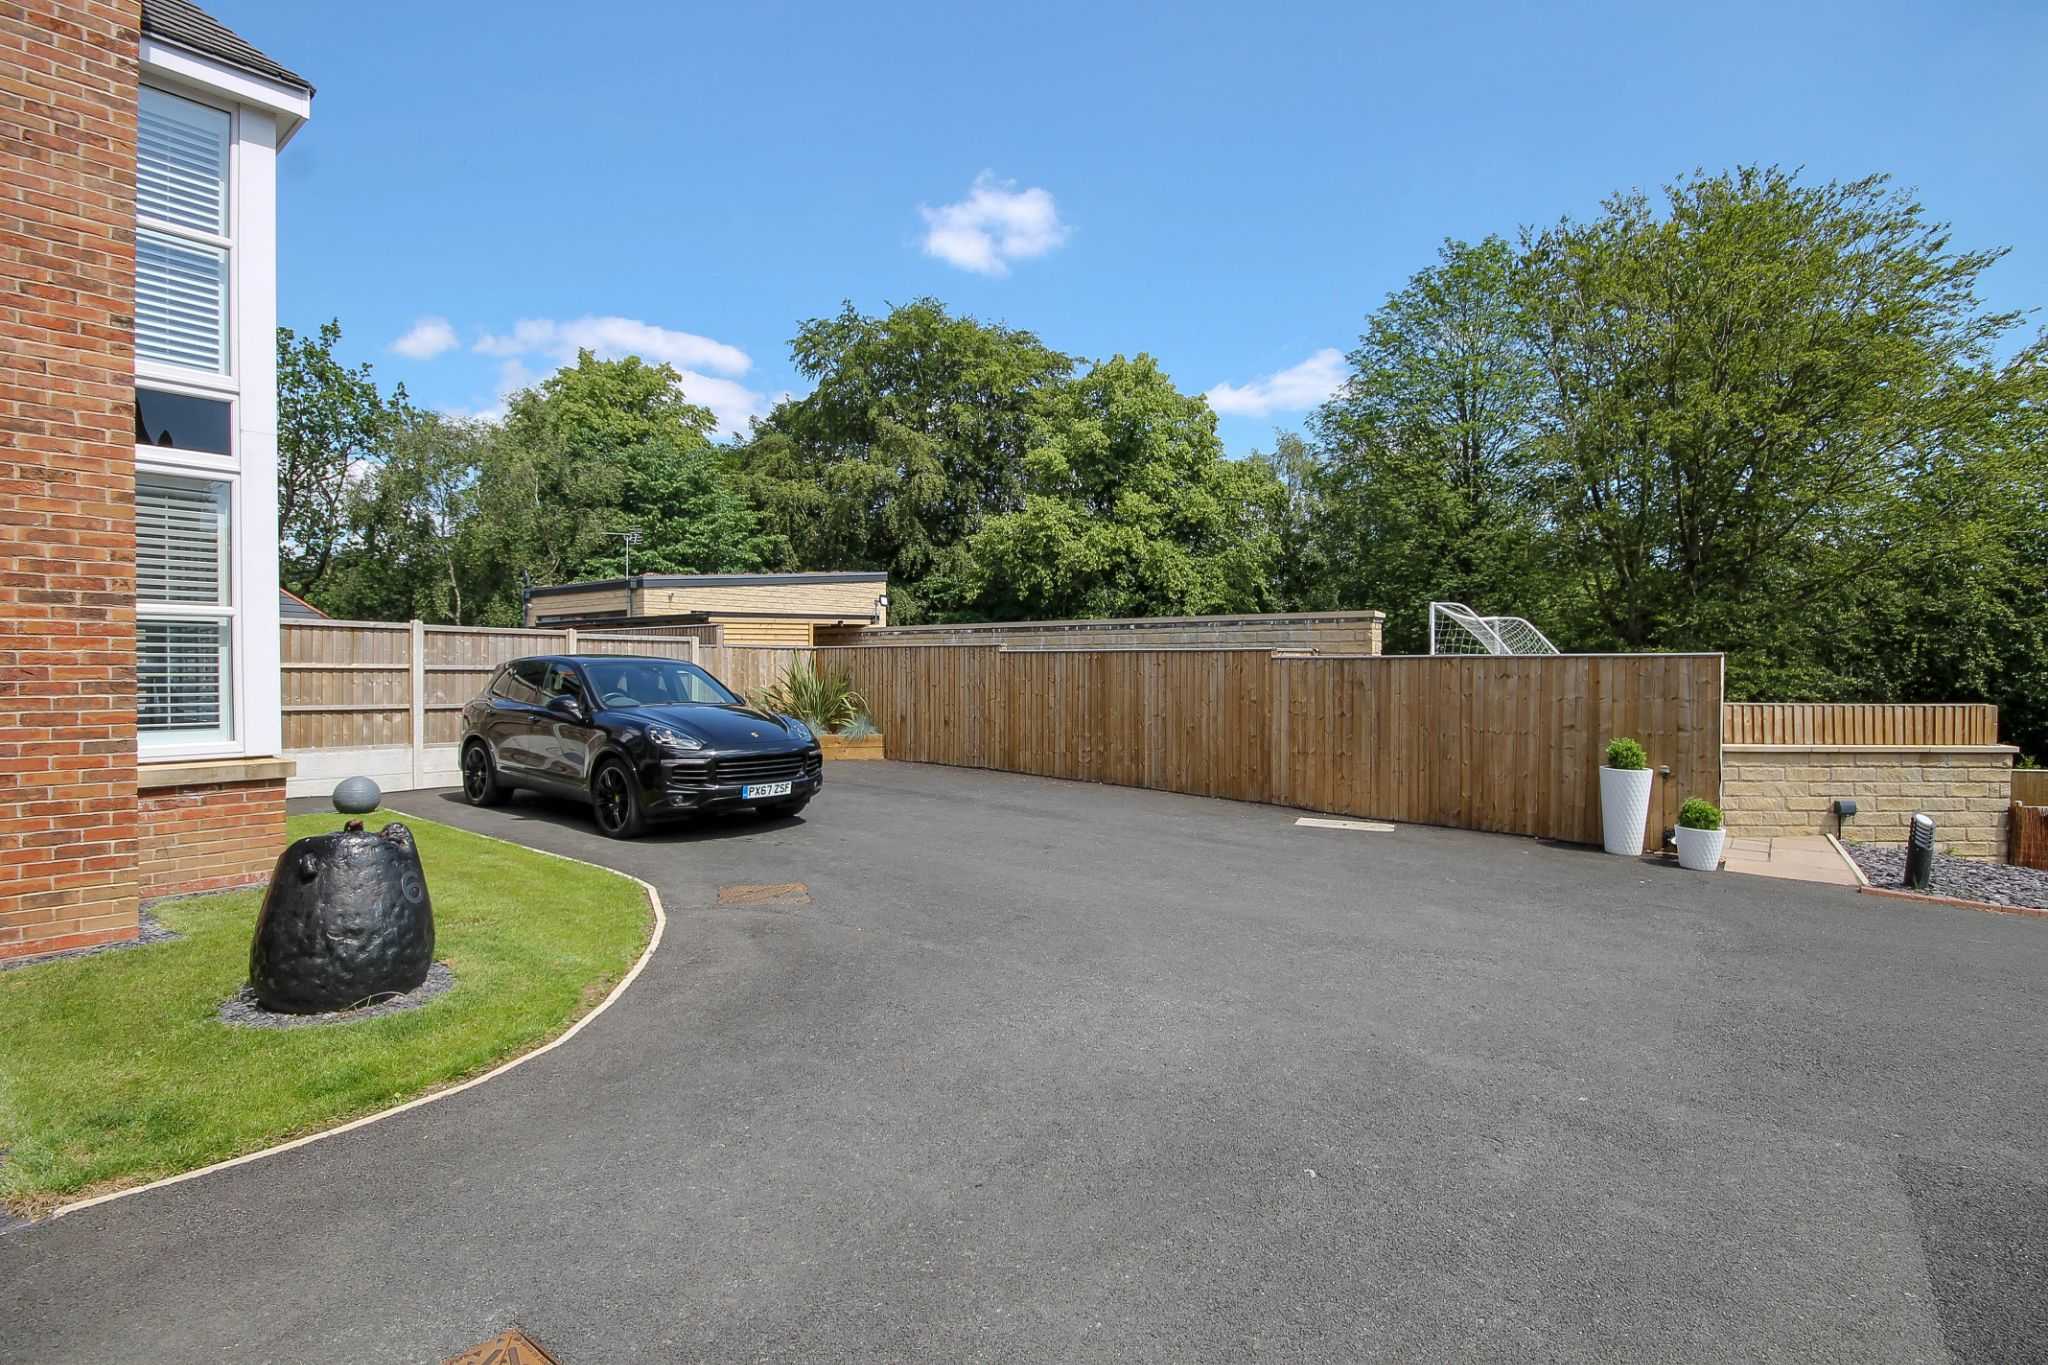 5 bedroom detached house SSTC in Bolton - Photograph 45